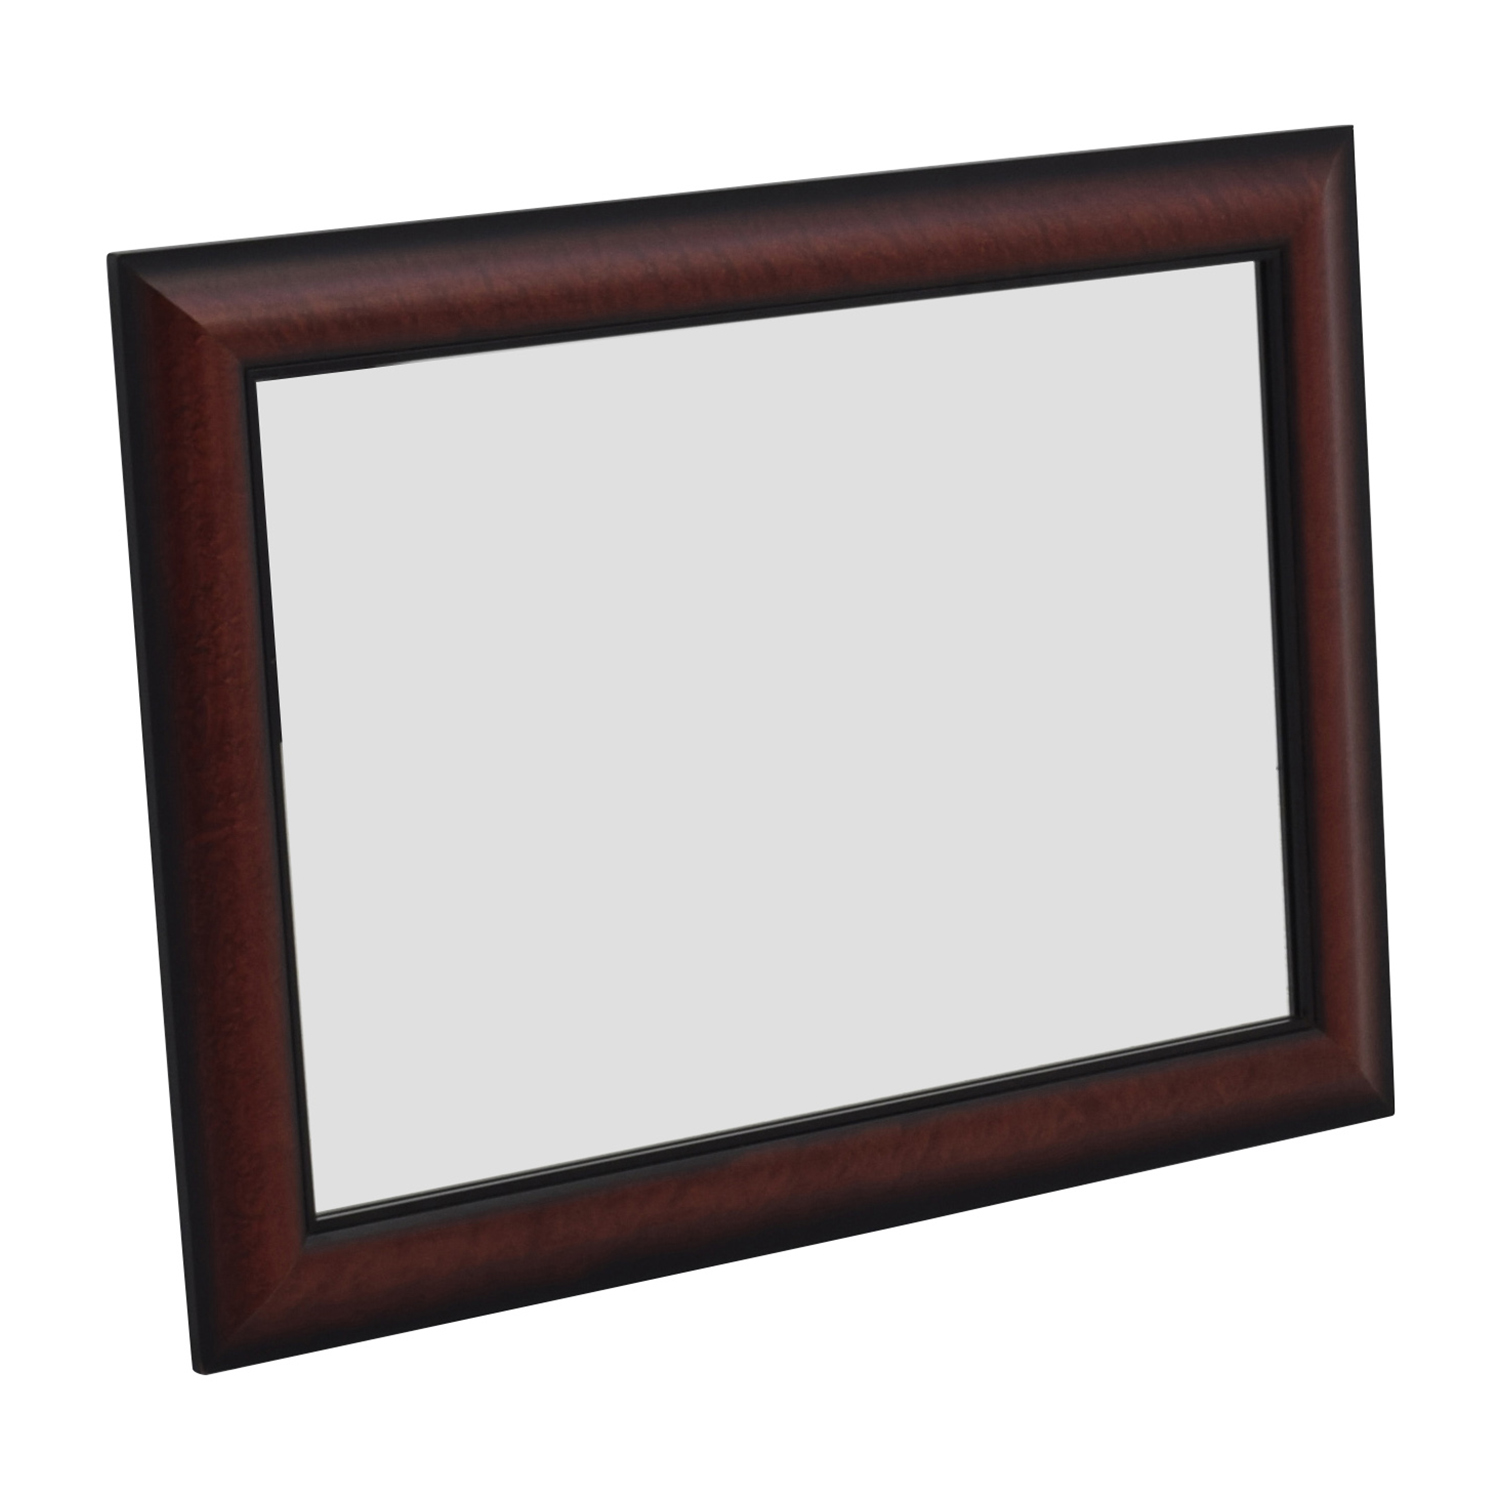 73 Off Cherry Wood Rectangular Wall Mirror Decor